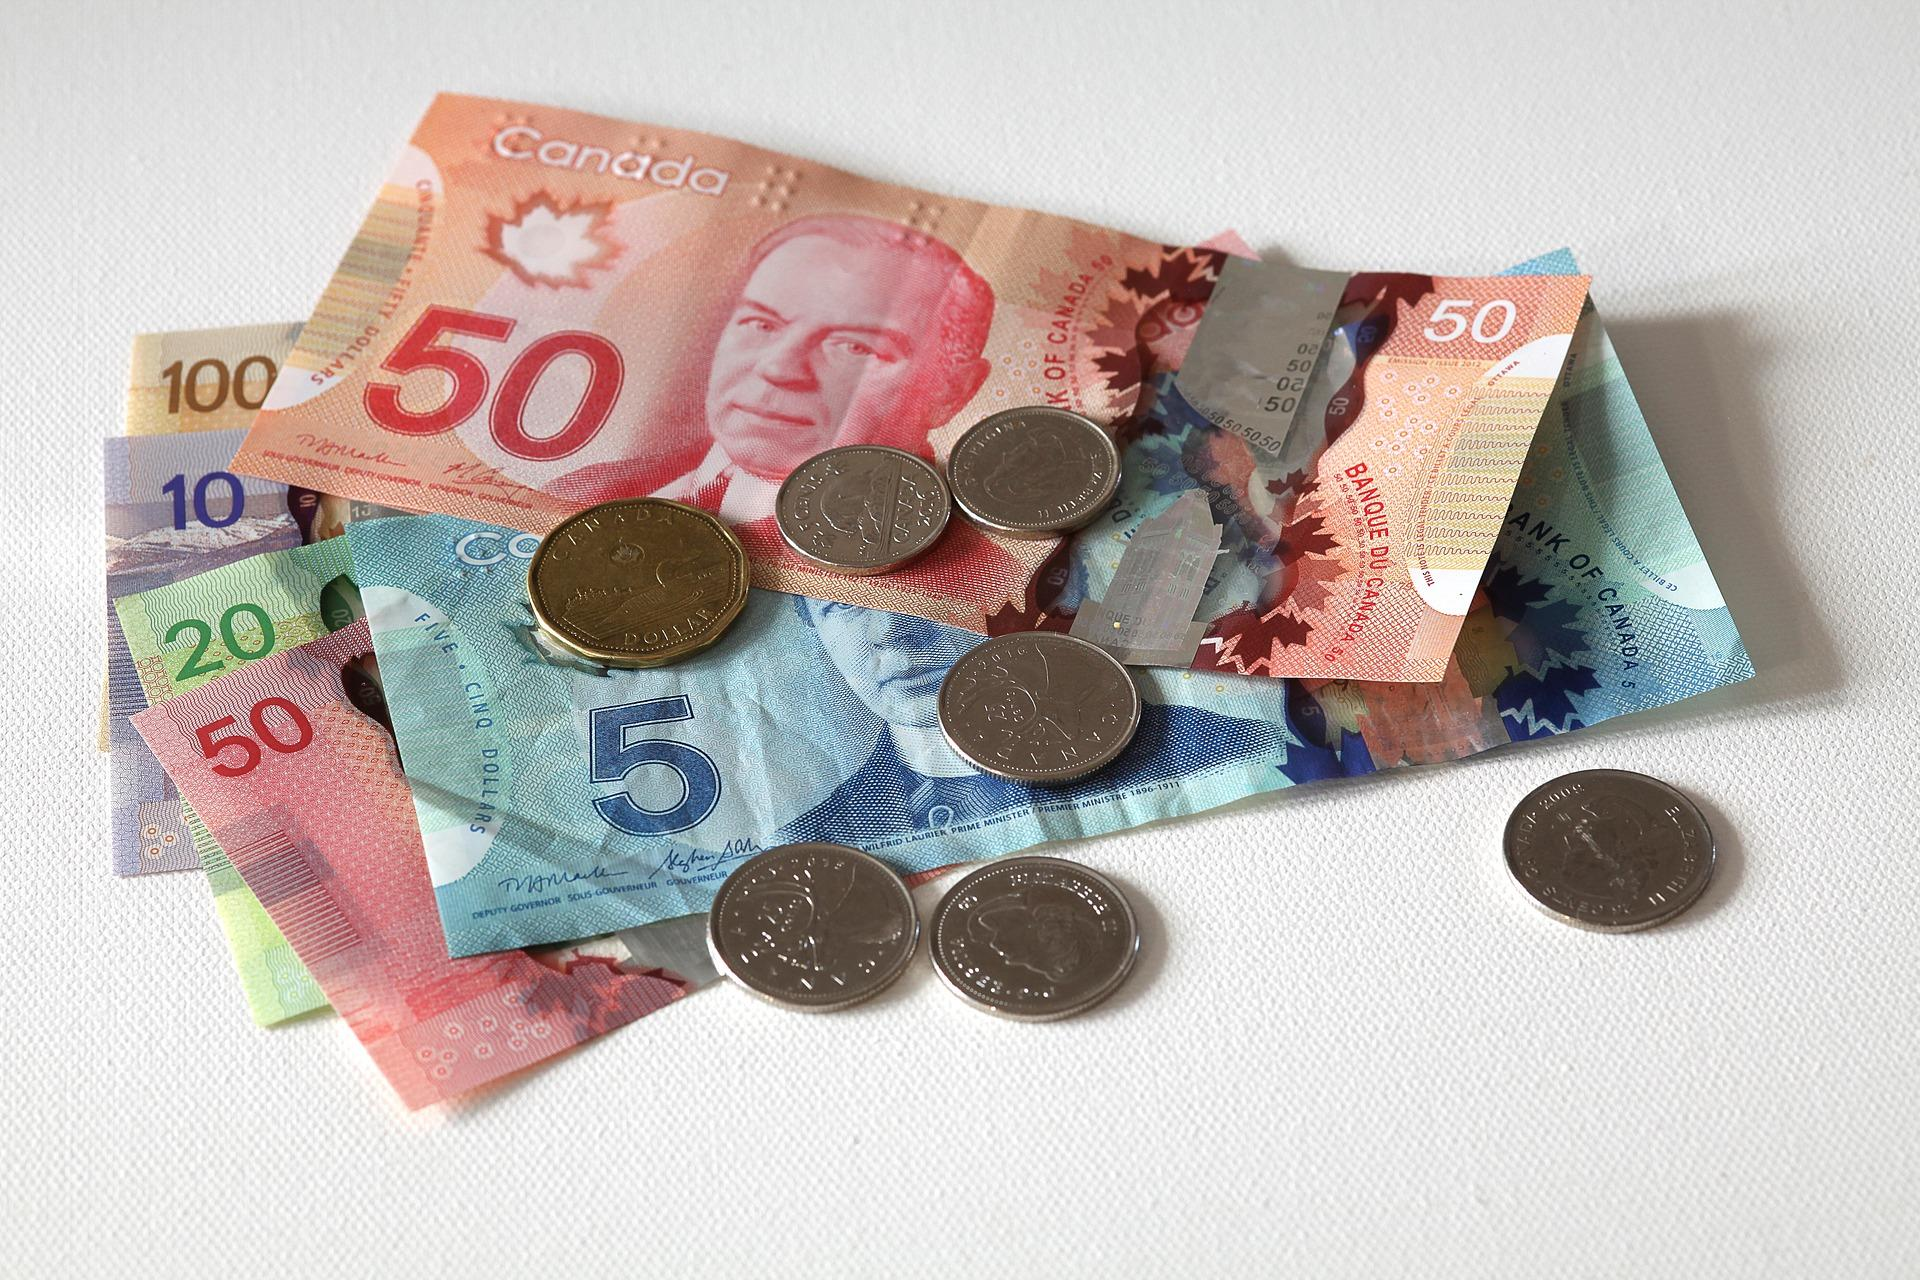 Date set for $500 OAS payment: Seniors aged 75 and older will receive the one-time payment in August Thumbnail